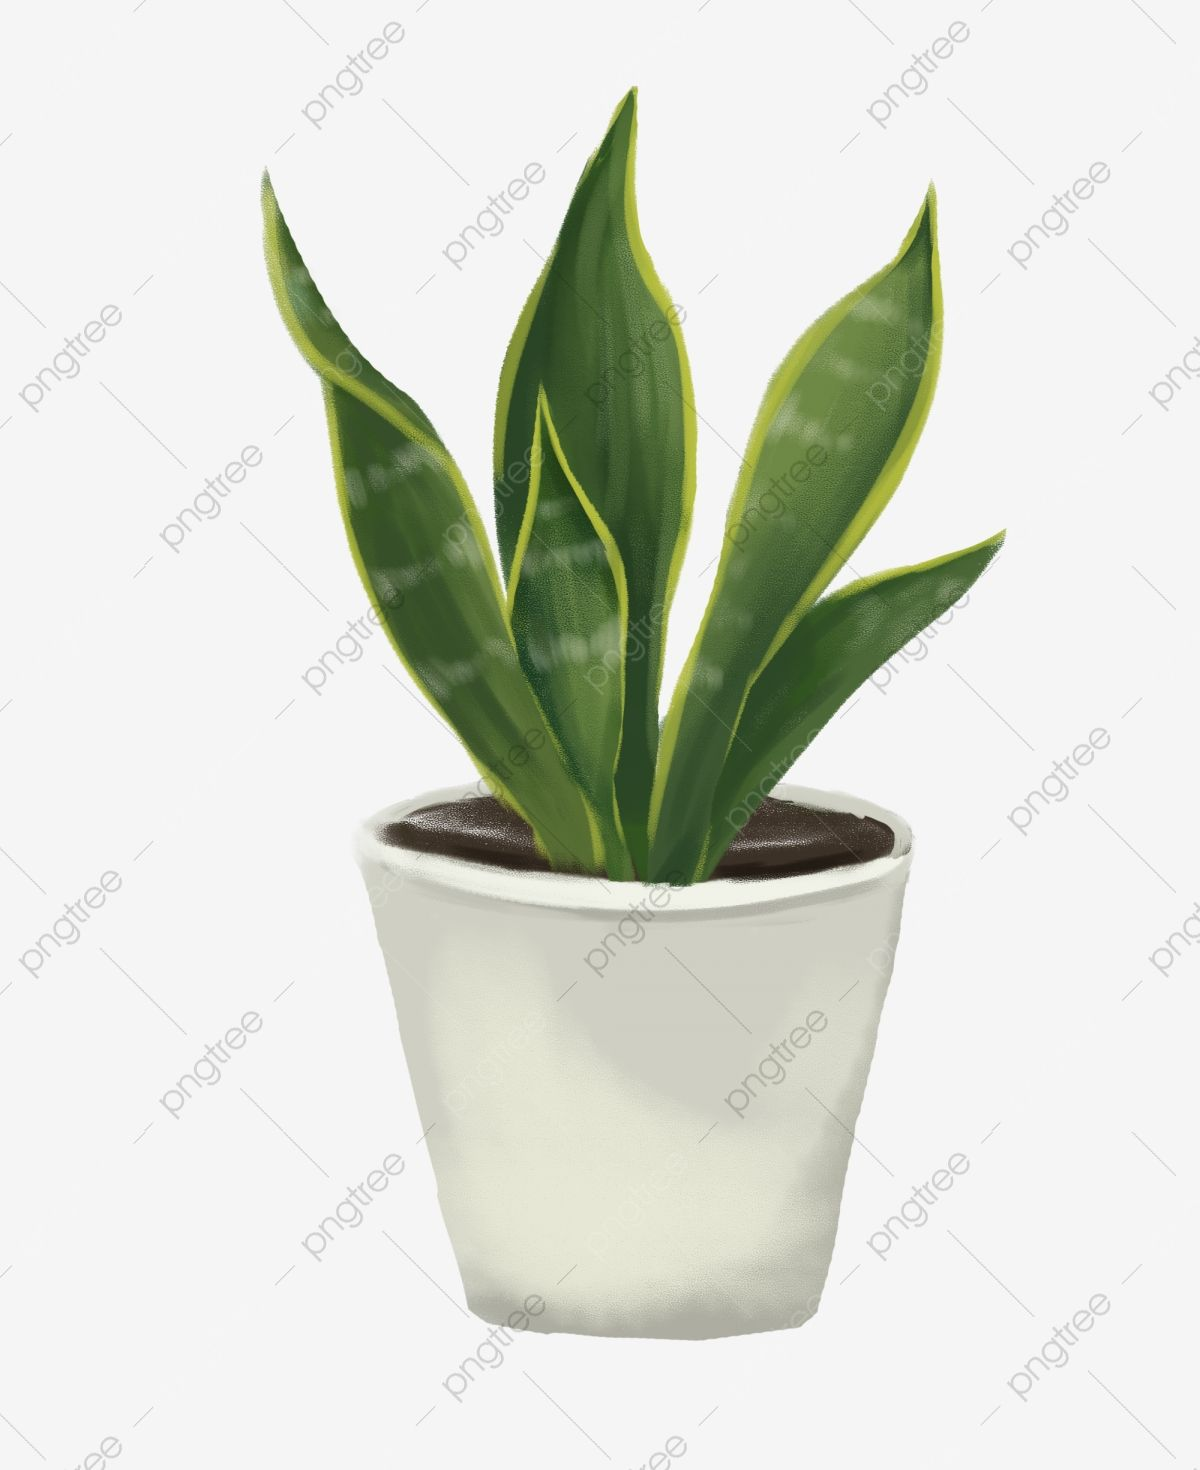 Green Leaves E Flower Pot Beautiful Potted Plant Hand Drawn Potted Illustration Cartoon Illustration Tigert White Flower Pot Plants Spring Flowers Background